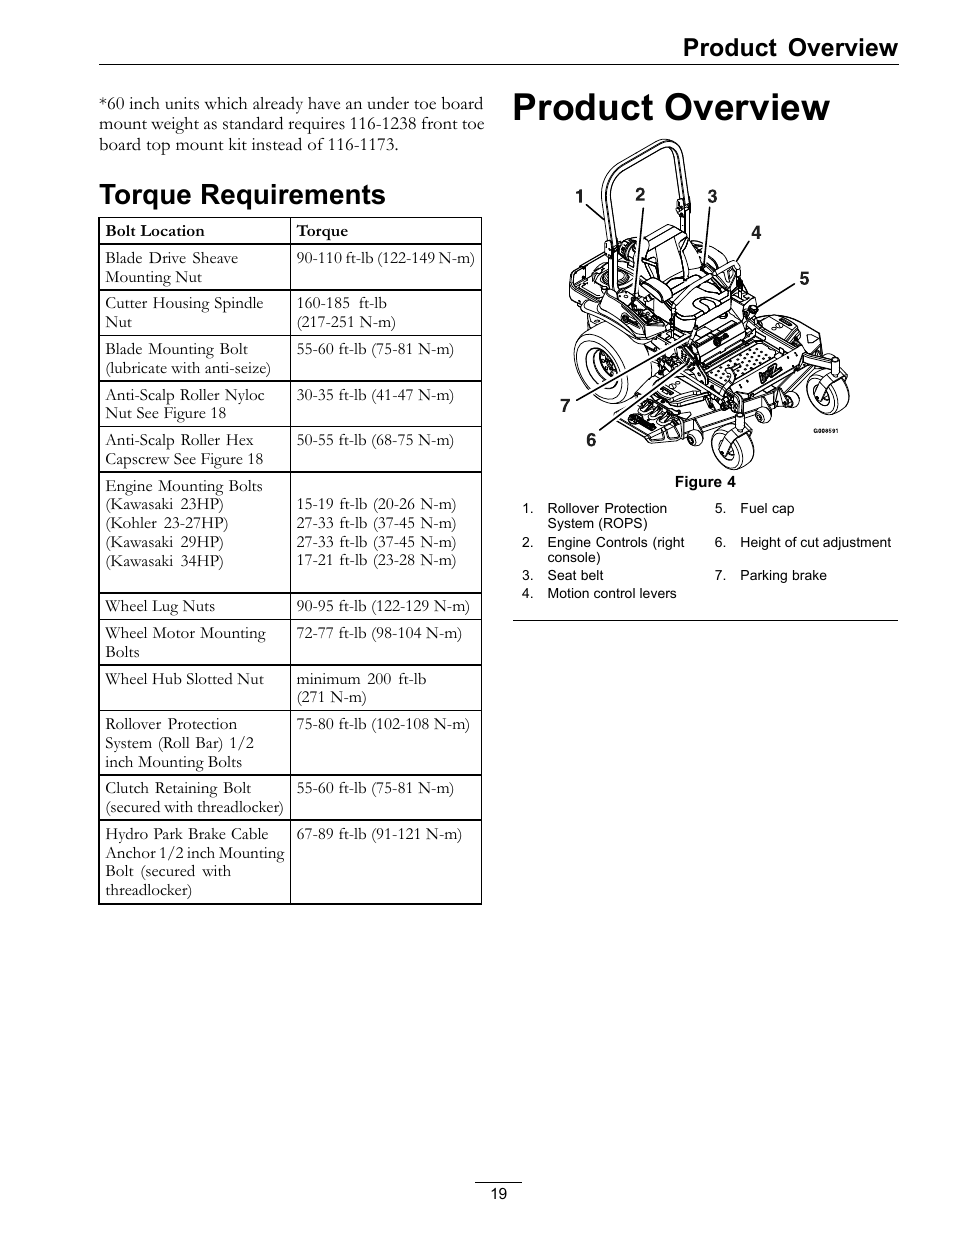 Torque requirements, Product overview | Exmark Lazer Z Mower